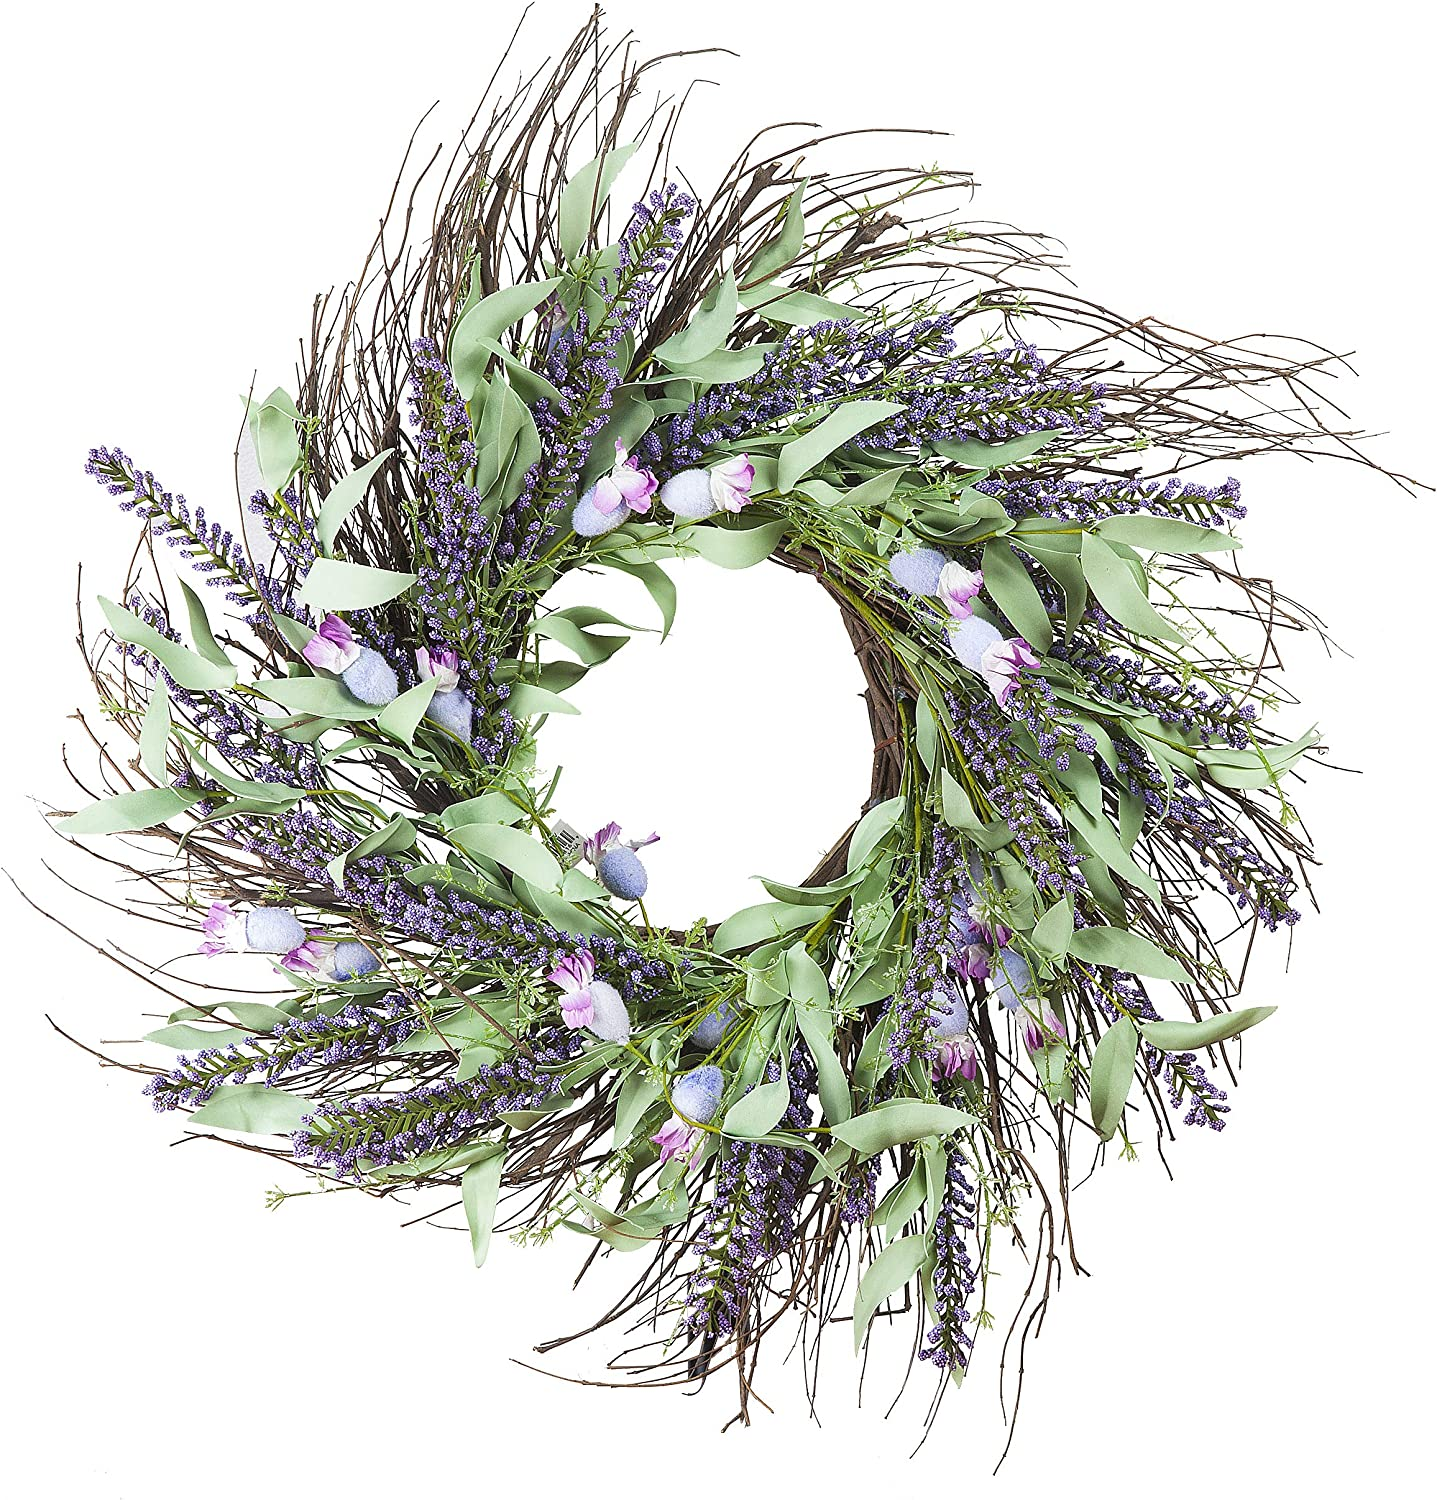 Enova Home 24 inches Mixed for Popular shop is the lowest price challenge Flower Artificial Popular popular Lavender Wreath